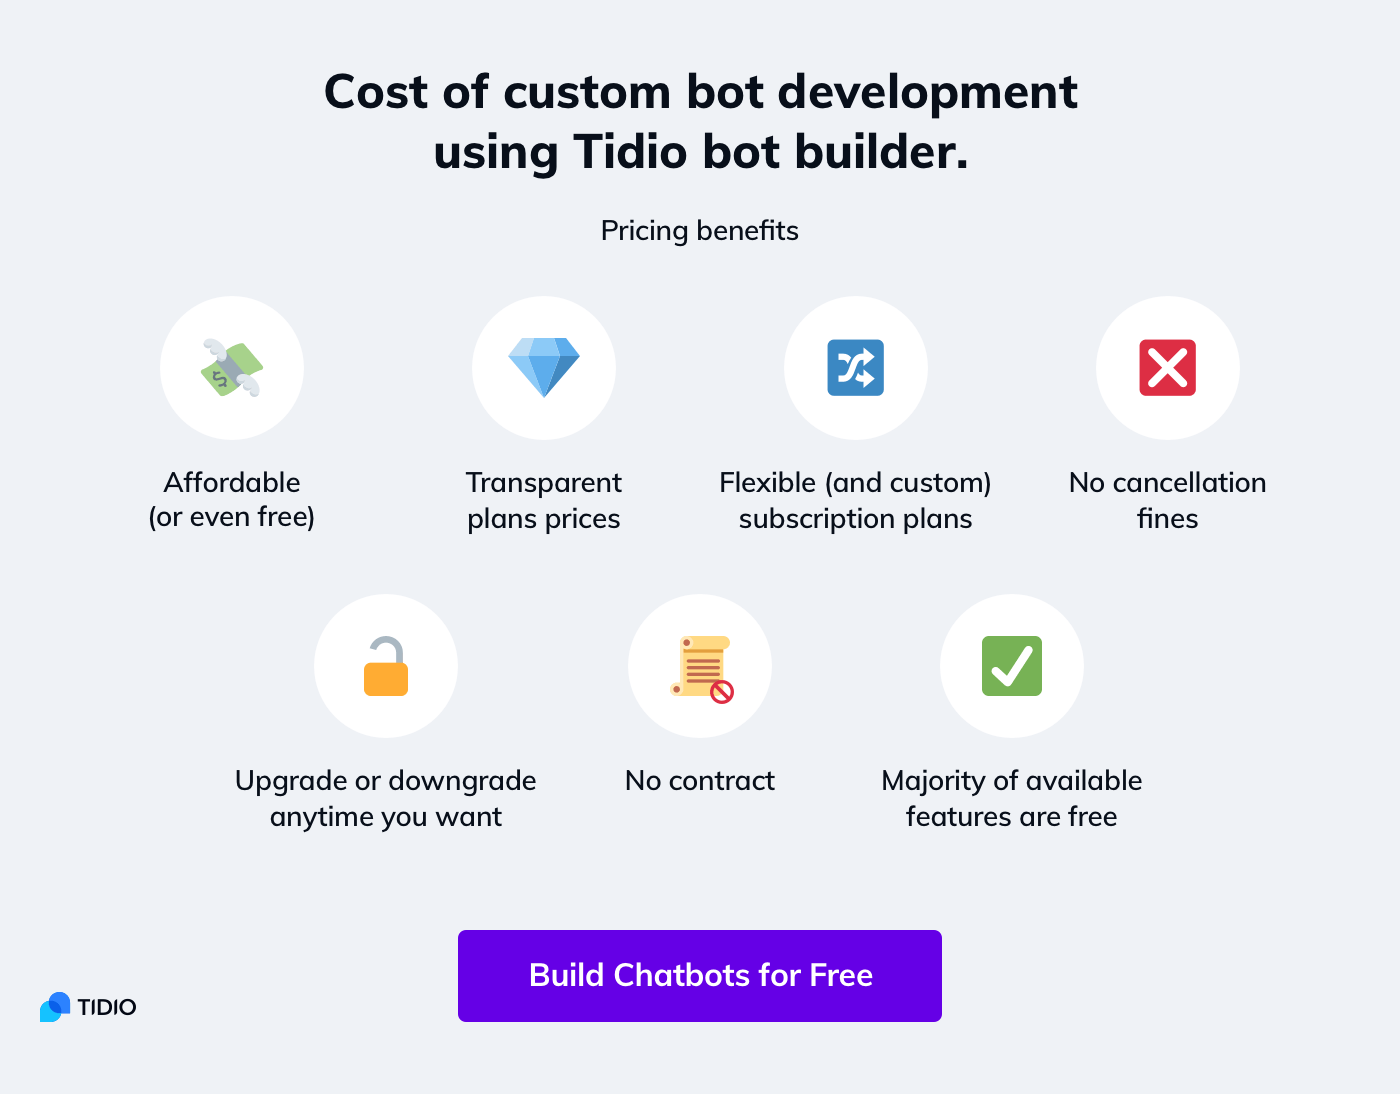 Cost of Tidio chatbots